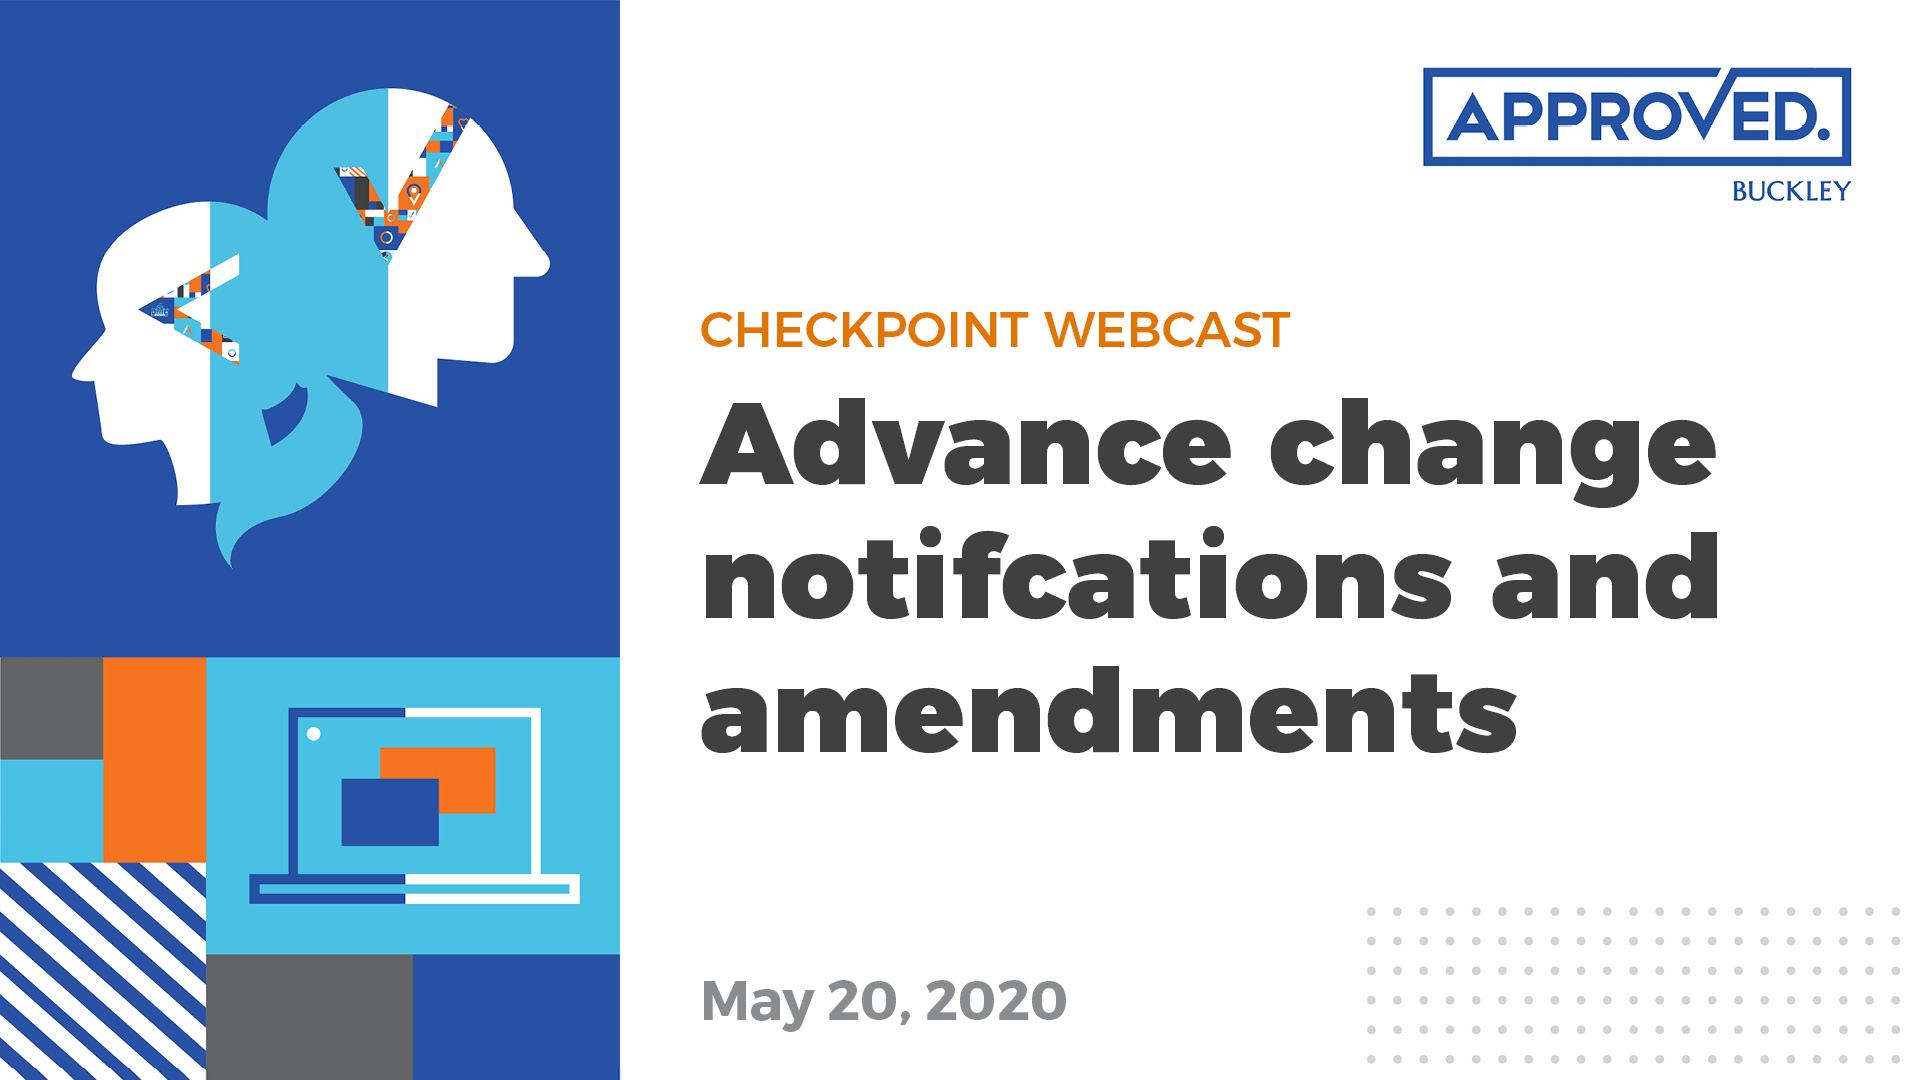 ACN and Amendments | APPROVED Checkpoint Webcast